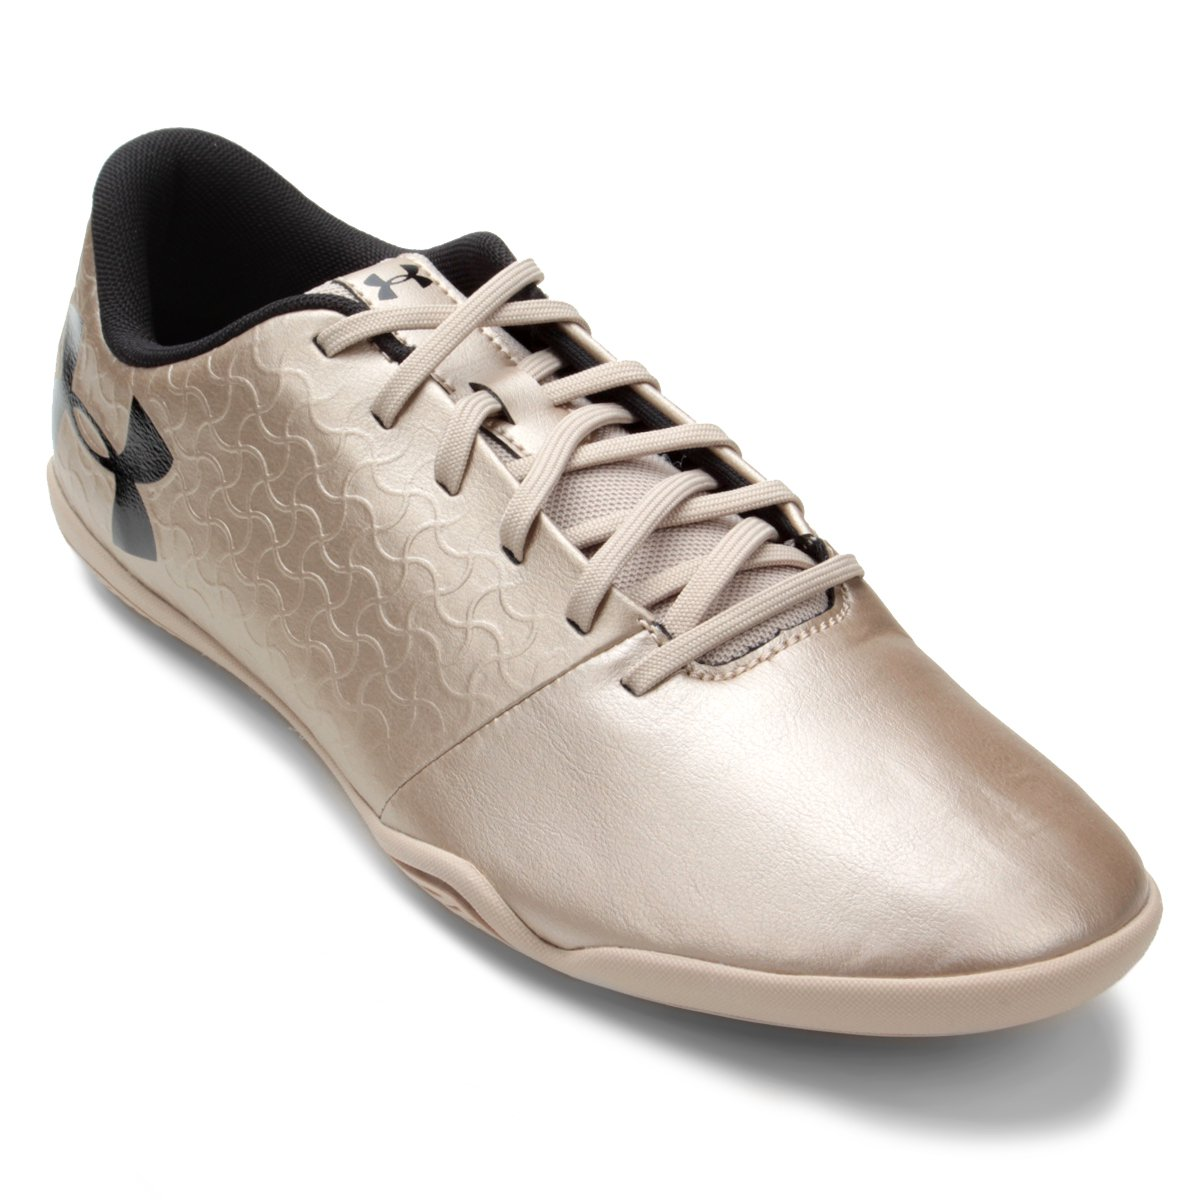 3f84084ebc 54%OFF Chuteira Futsal Under Armour Select